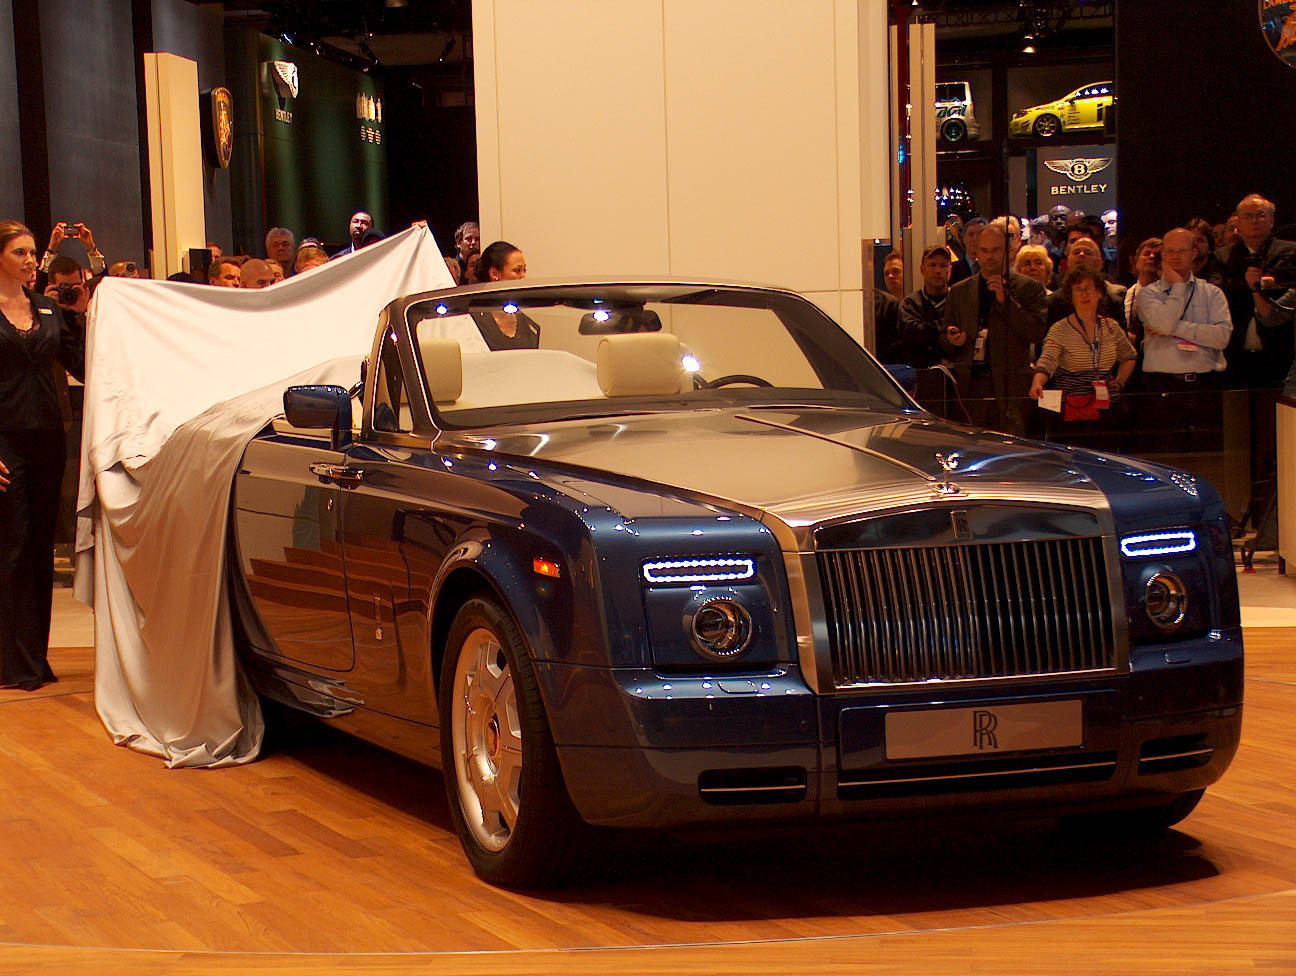 The Rolls-Royce Phantom